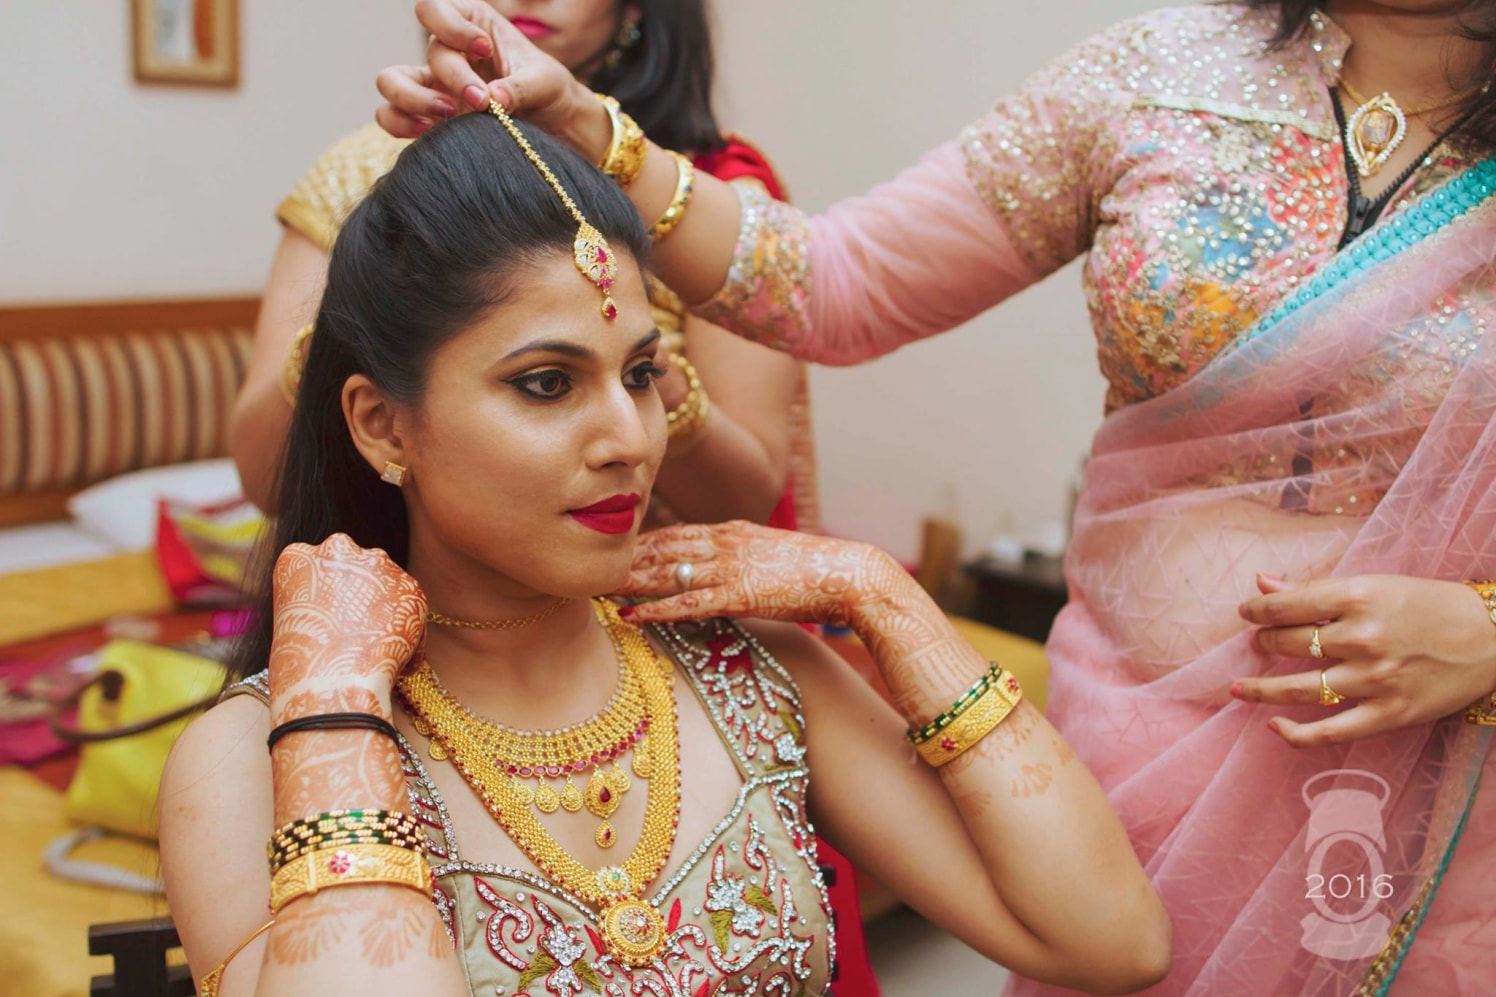 Bride-To-Be Wearing Exquisite Gold Jewelry by Obscur Photography Wedding-photography | Weddings Photos & Ideas